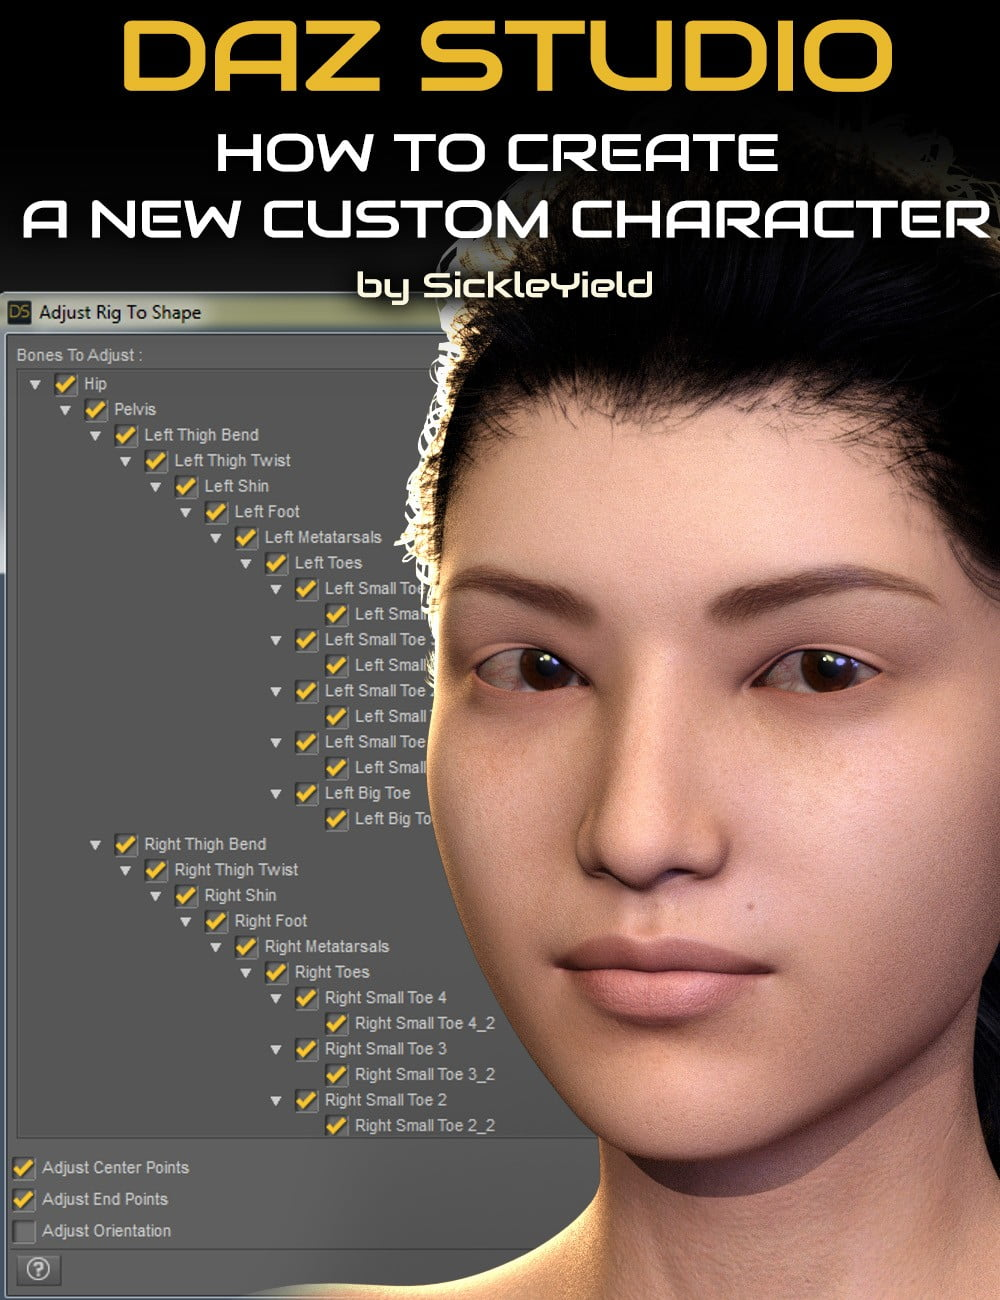 How to Create a New Custom Daz Studio Character